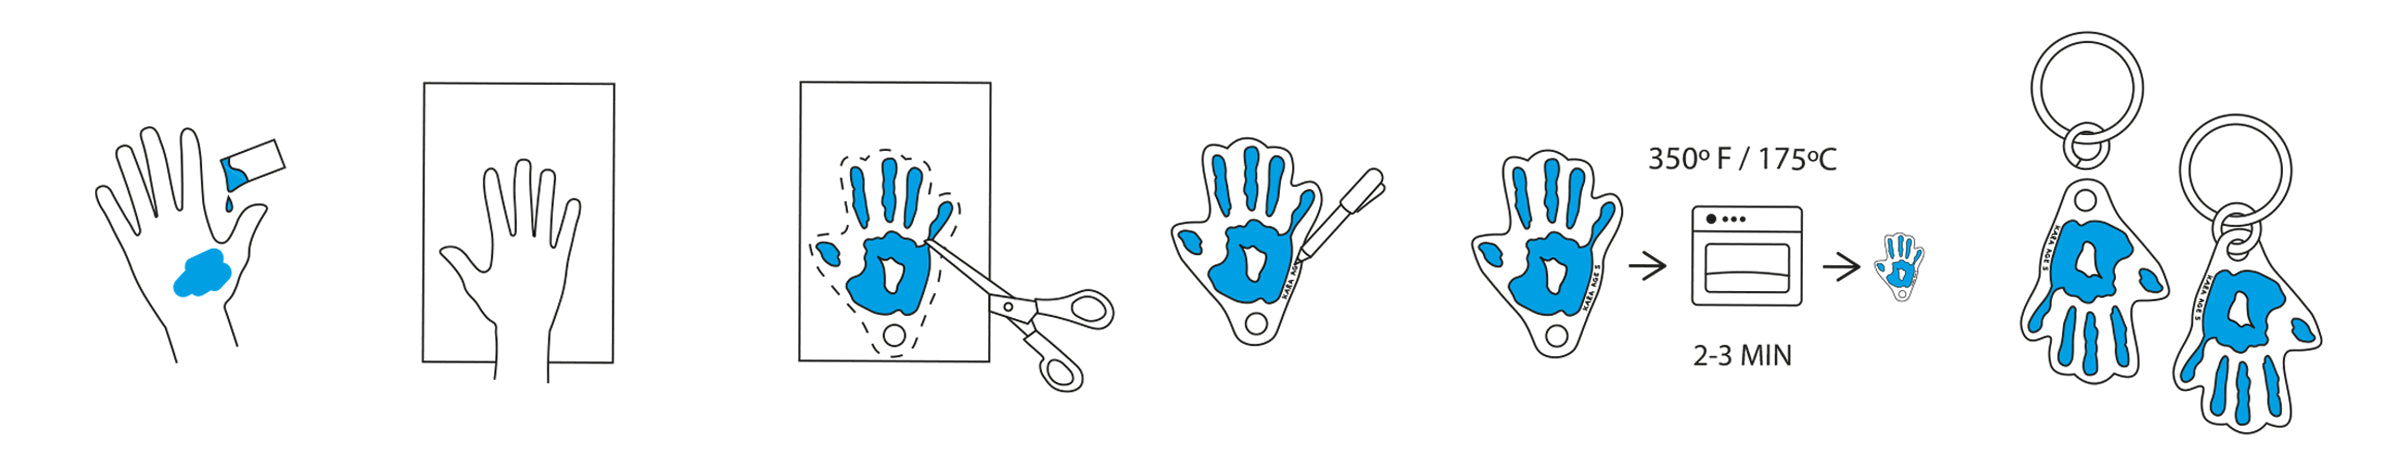 Shrinking Handprint Keyring Step by Step Instructions by Pikkii